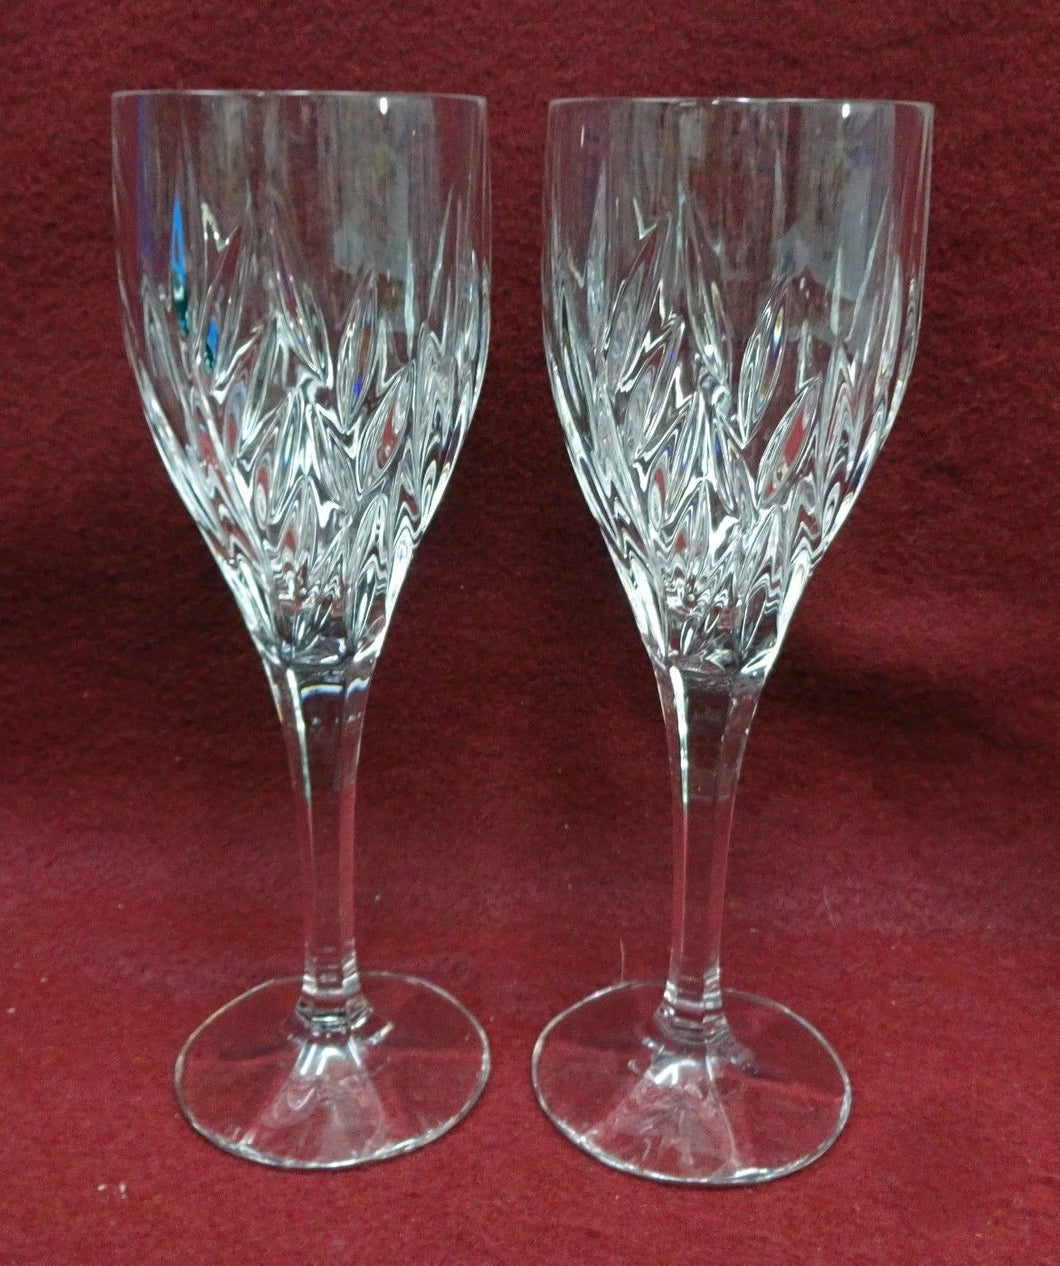 GORHAM crystal STAR BLOSSOM pattern Wine Goblet or Glass - Set of Two (2) 8-1/8